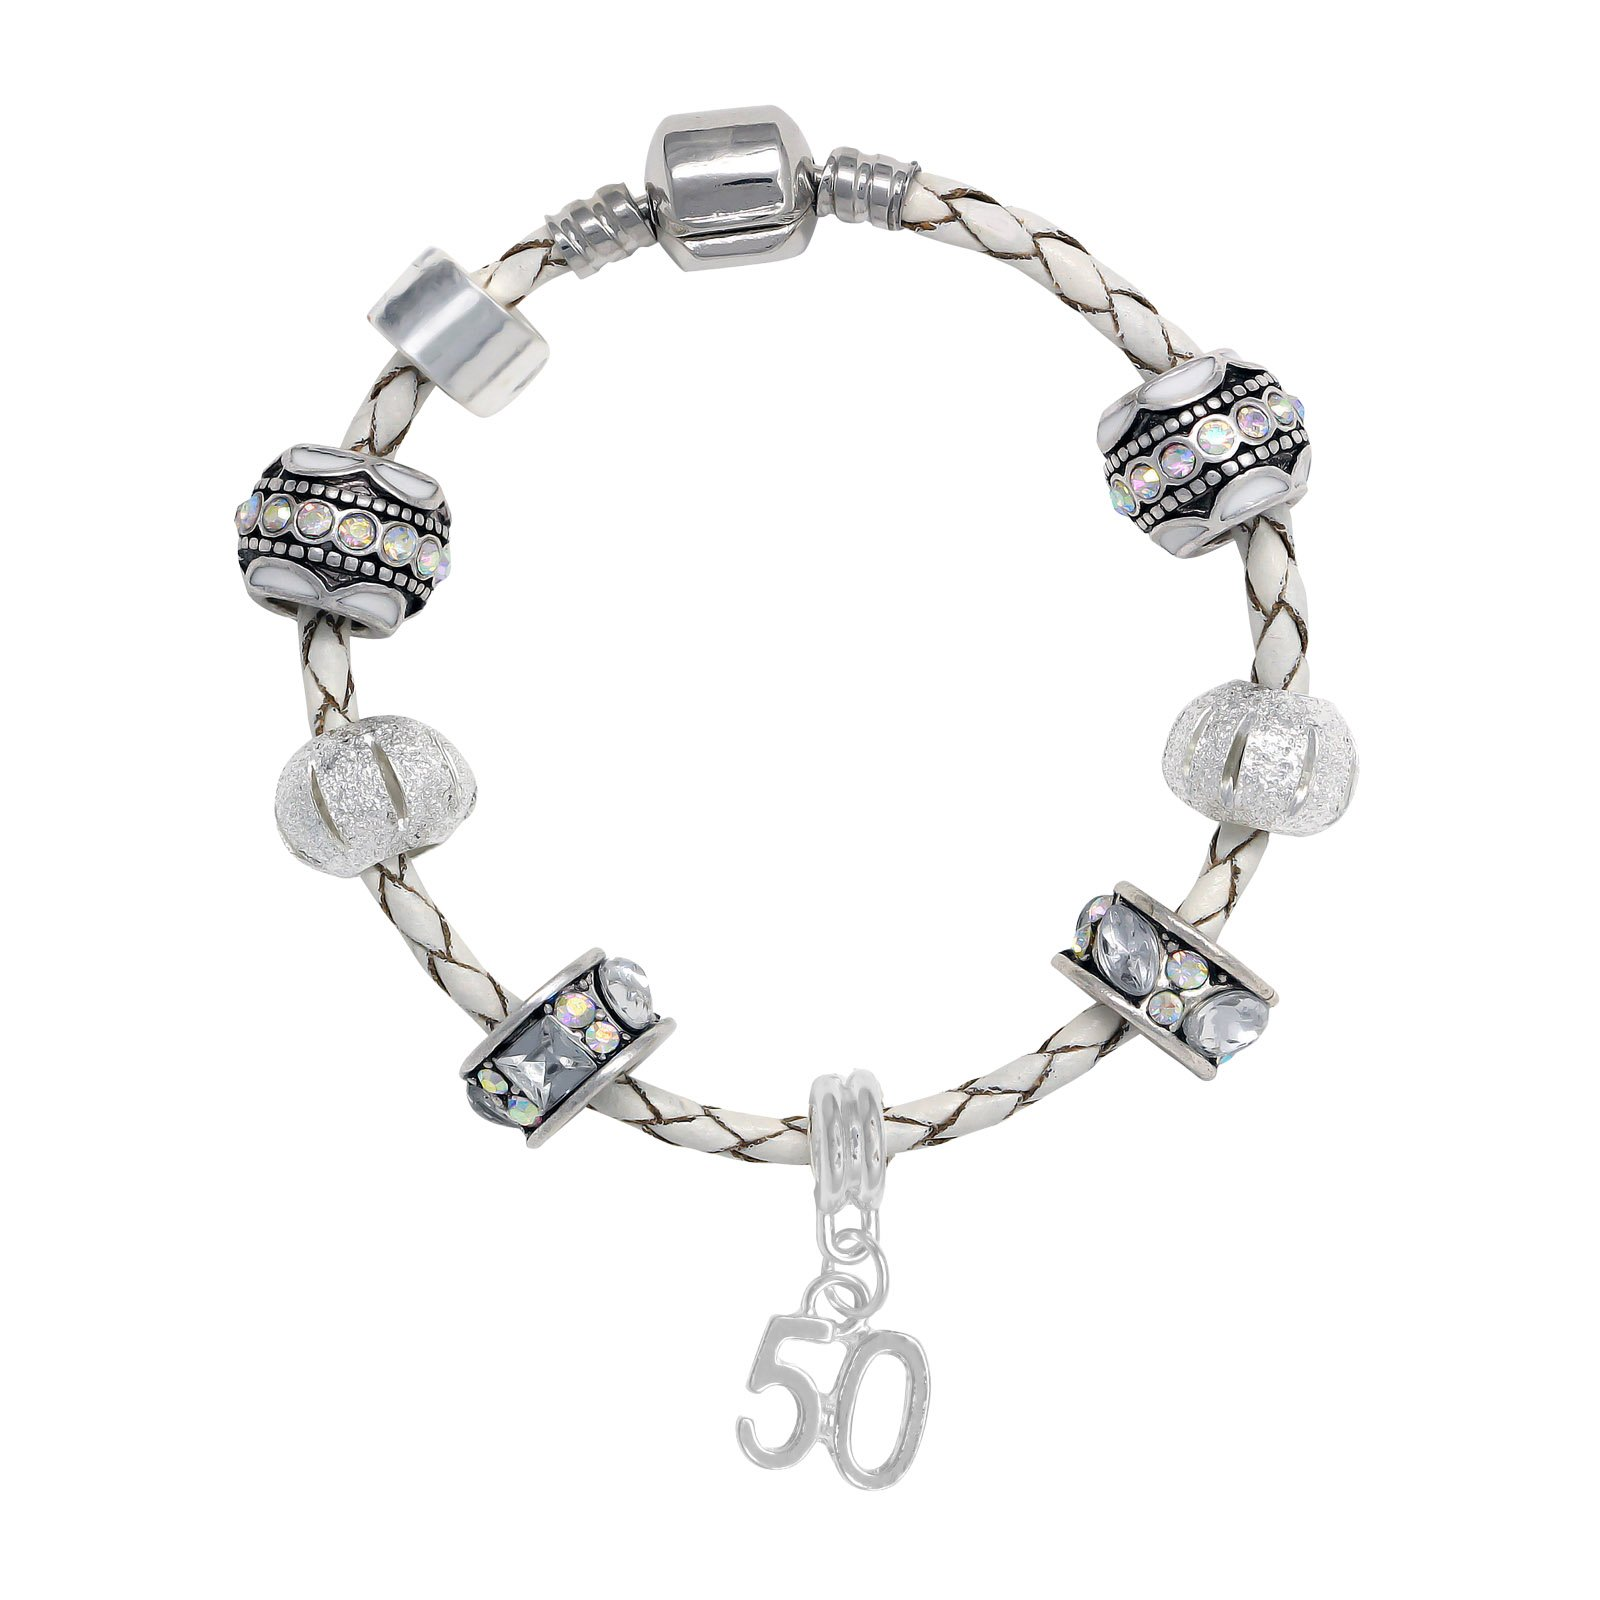 Truly Charming Happy Birthday Leather Charm Bracelet Pandora Style Gift Boxed (50th)